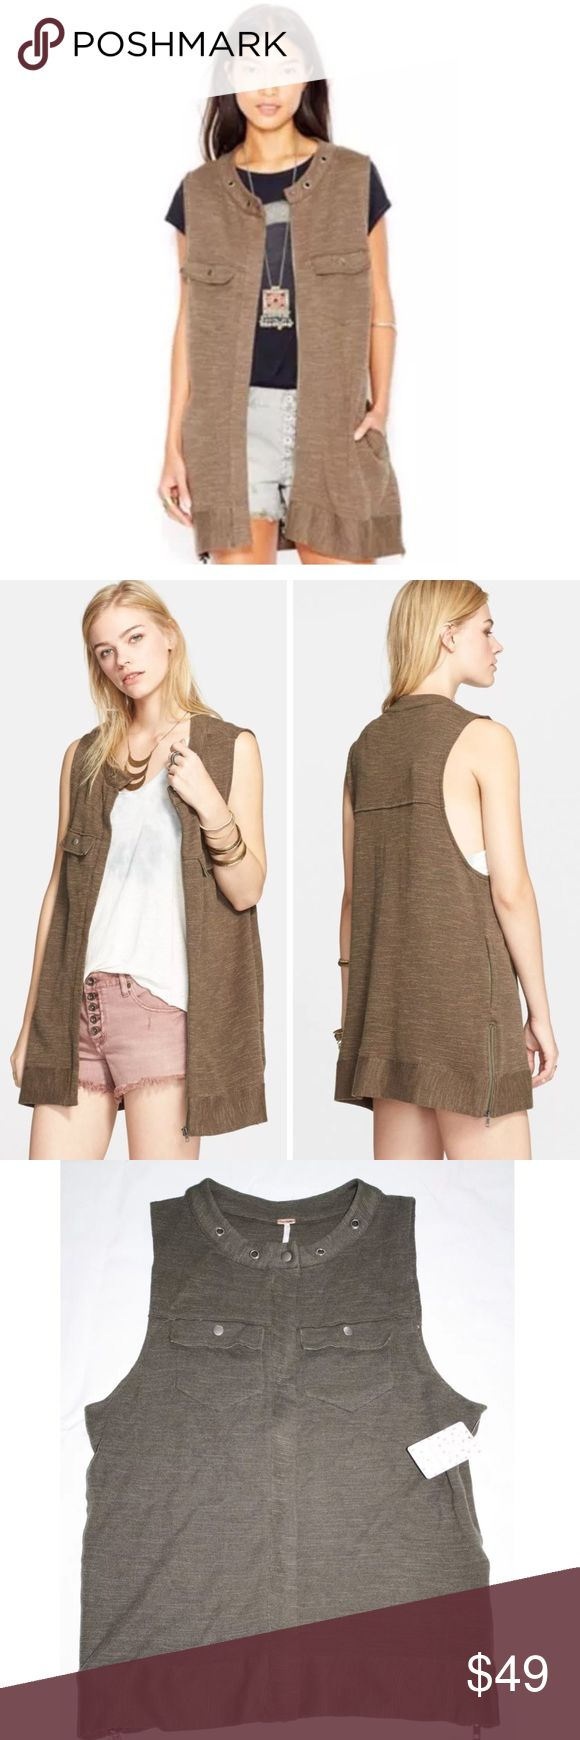 """FREE PEOPLE HIGHWAY ZIP front VEST JACKET TOP new FREE PEOPLE  Highway Zip Front Vest  $148 retail price  Brand new with tag  Color: Dark Olive ( please see photos of the actual vest laying flat its slightly darker than stock photo) Details:  A snap-button collar and chest flap pockets bring old-school style to this longline utility vest fashioned from a lightweight cotton blend. - Front zip closure - 60% cotton, 40% rayon - Hand wash cold, dry flat  Size Small:  armpit to armpit flat 22""""…"""